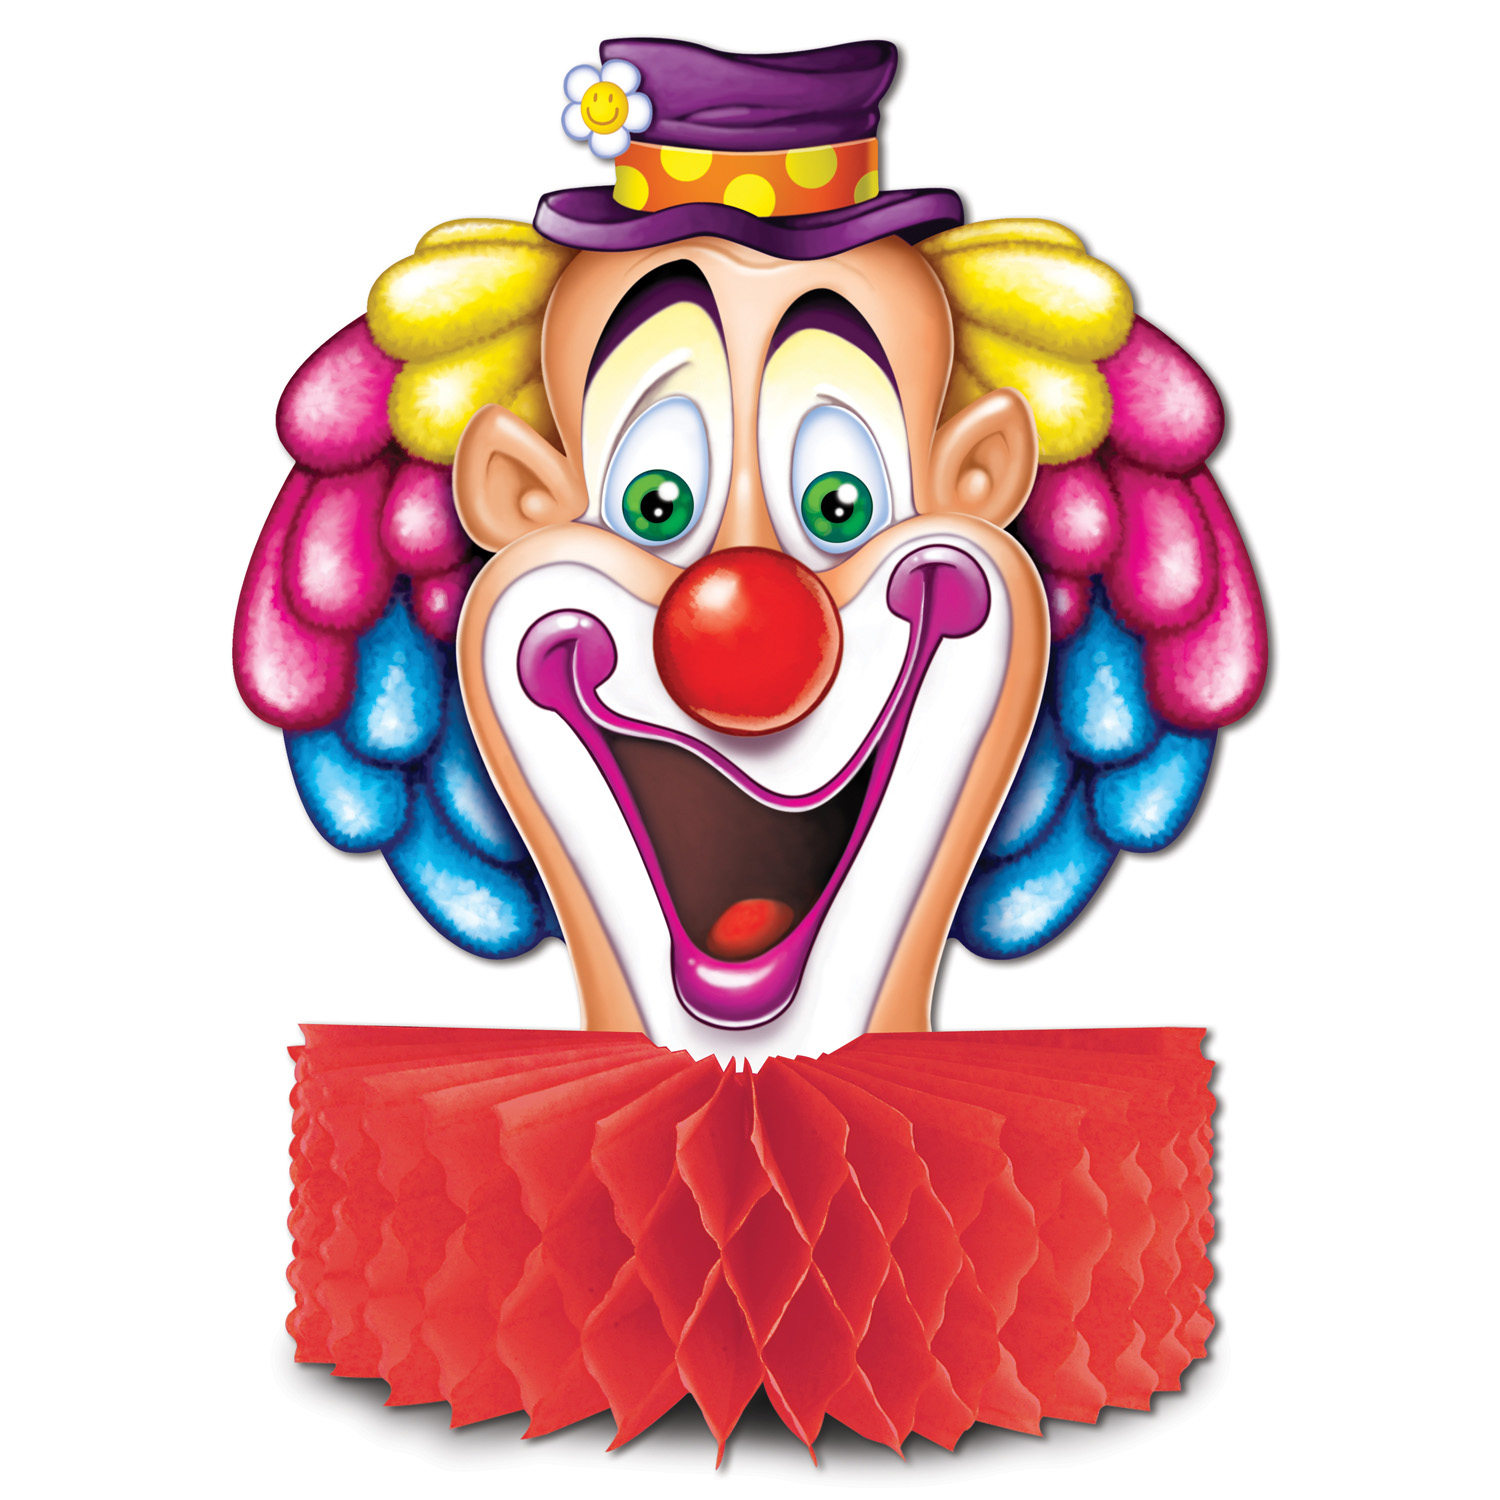 Clown Centerpiece (Pack of 12) Clown Centerpiece, Tissue Decor, Circus decorations, Multi-Color party supplies, Wholesale party goods, Cheap decorations, Clown centerpieces, Clown Face